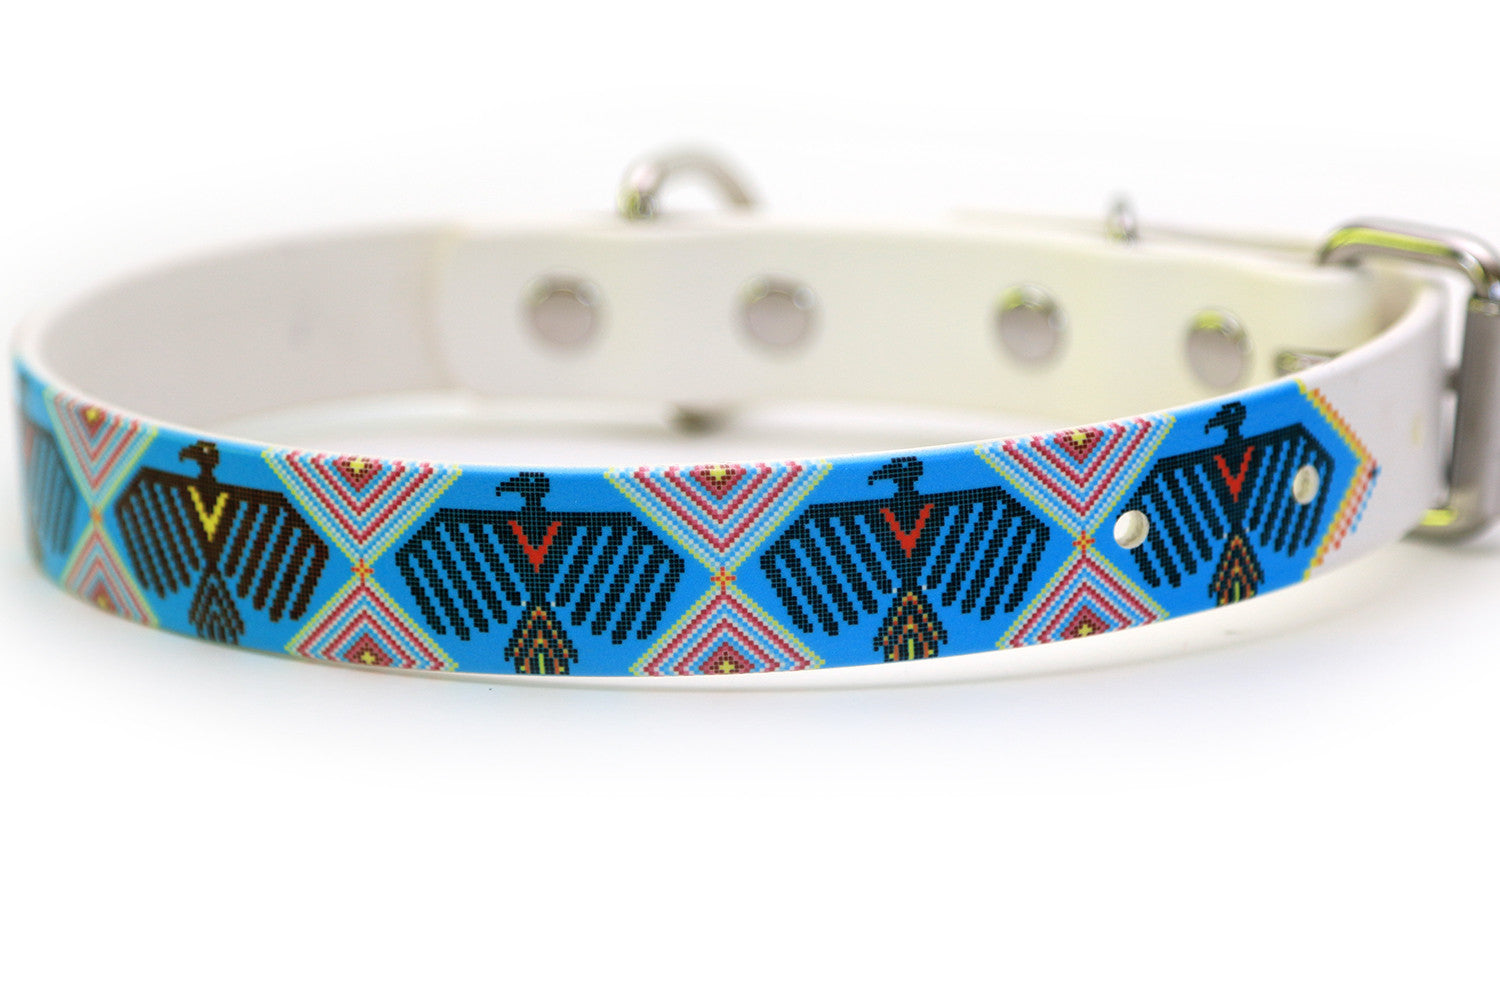 Waterproof Dog Collar - Native American Warbird Design